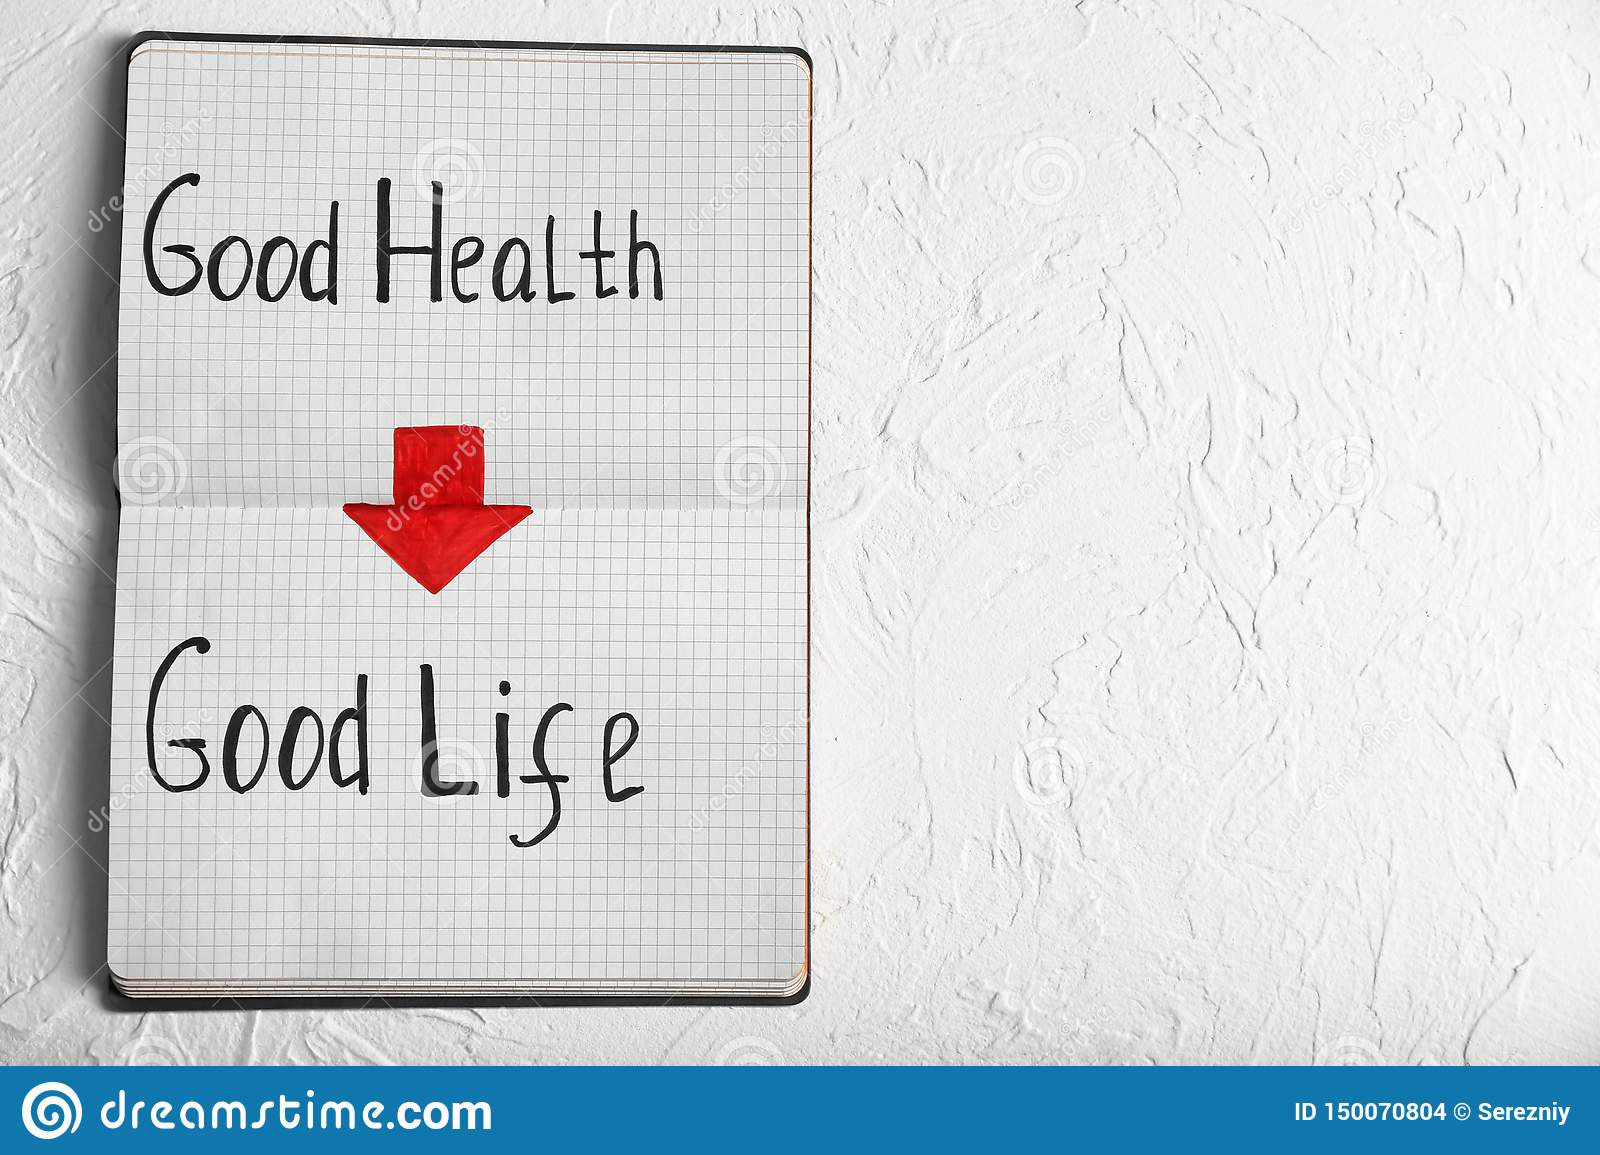 Phrase  Good health - good life   written in notebook on white background